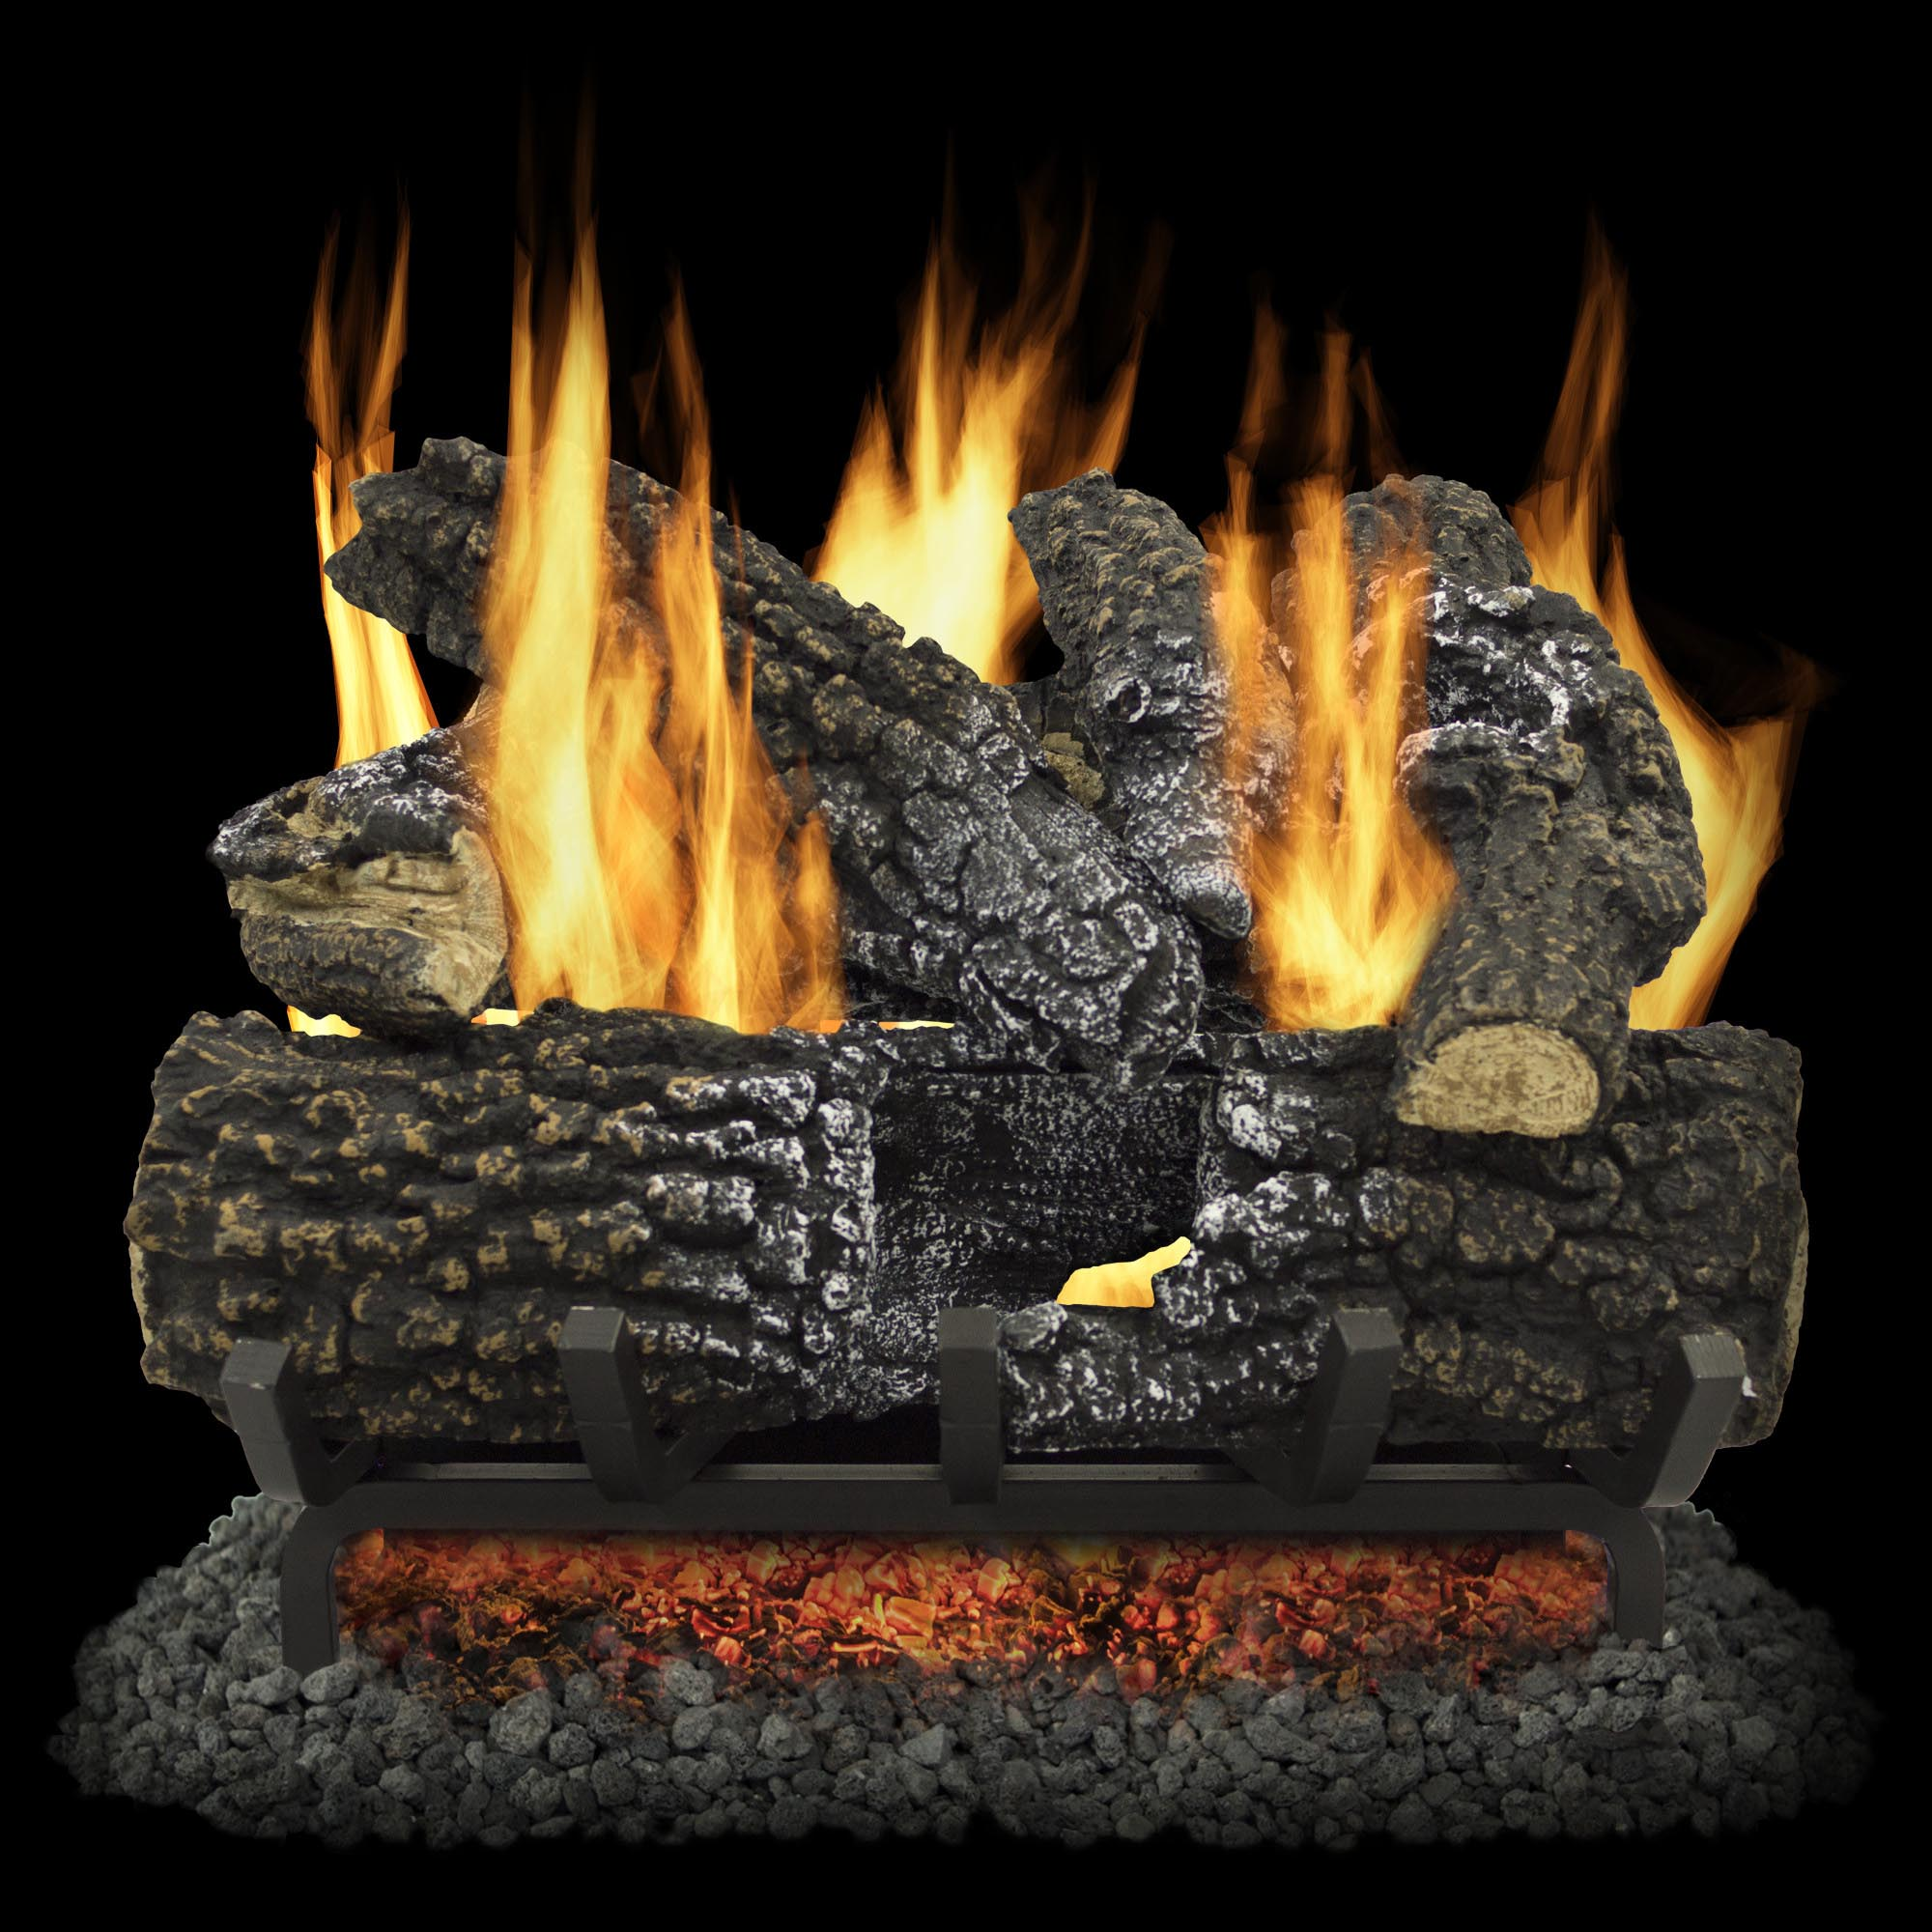 Light A Gas Fireplace Fireplace Fake Lighted Logs Fireplace Designs